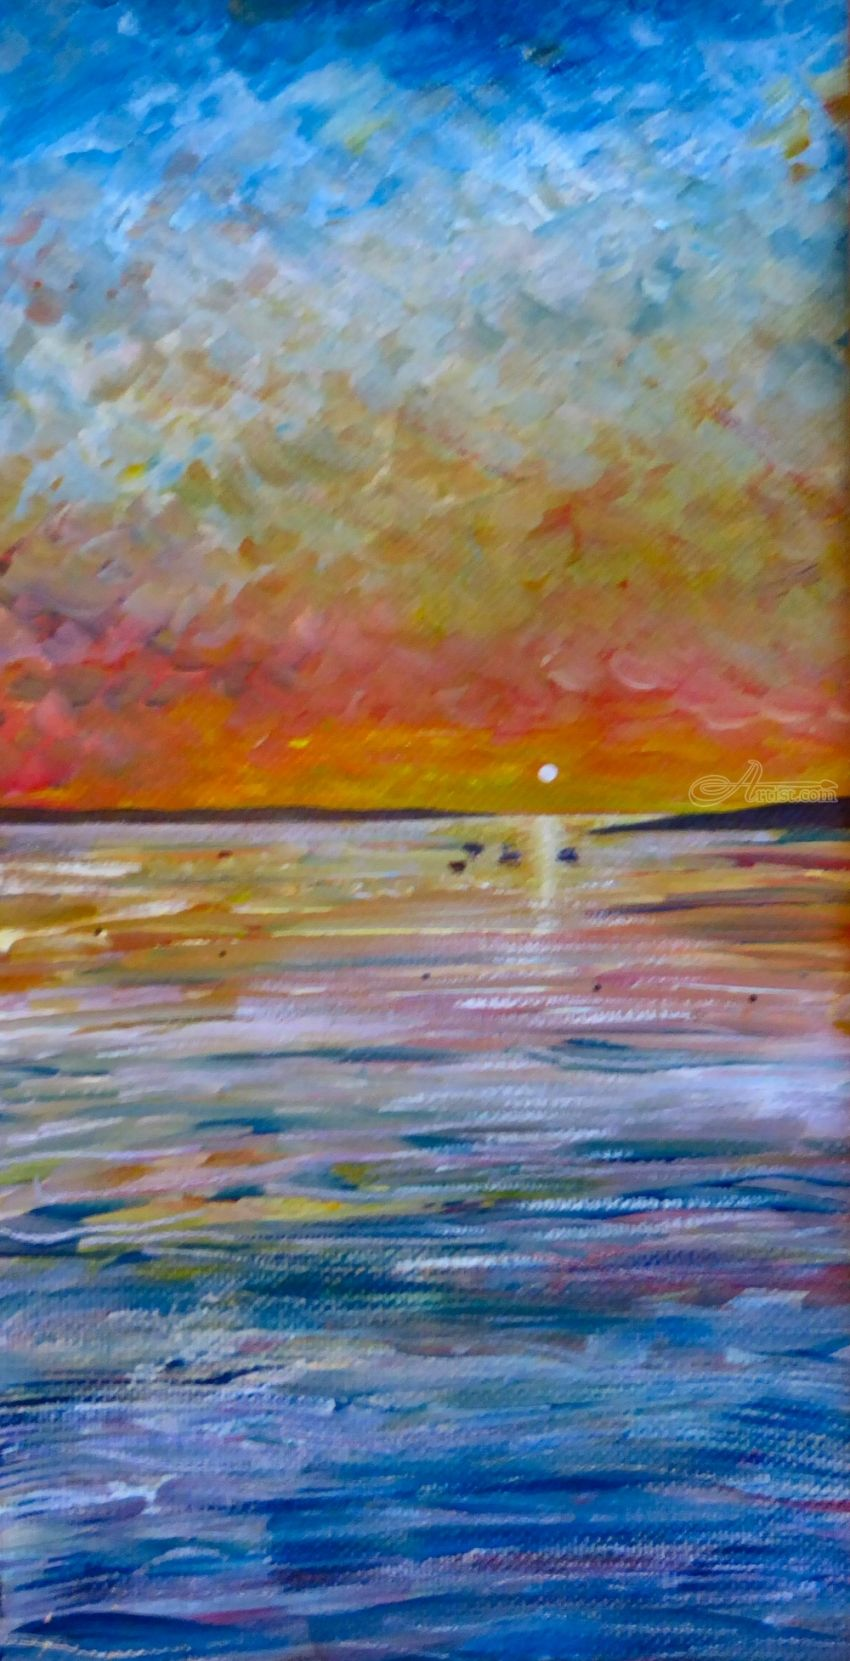 Evening Sun, Paintings, Fine Art, Impressionism, Realism, Seascape, Acrylic, Painting, By Matthew David Evans